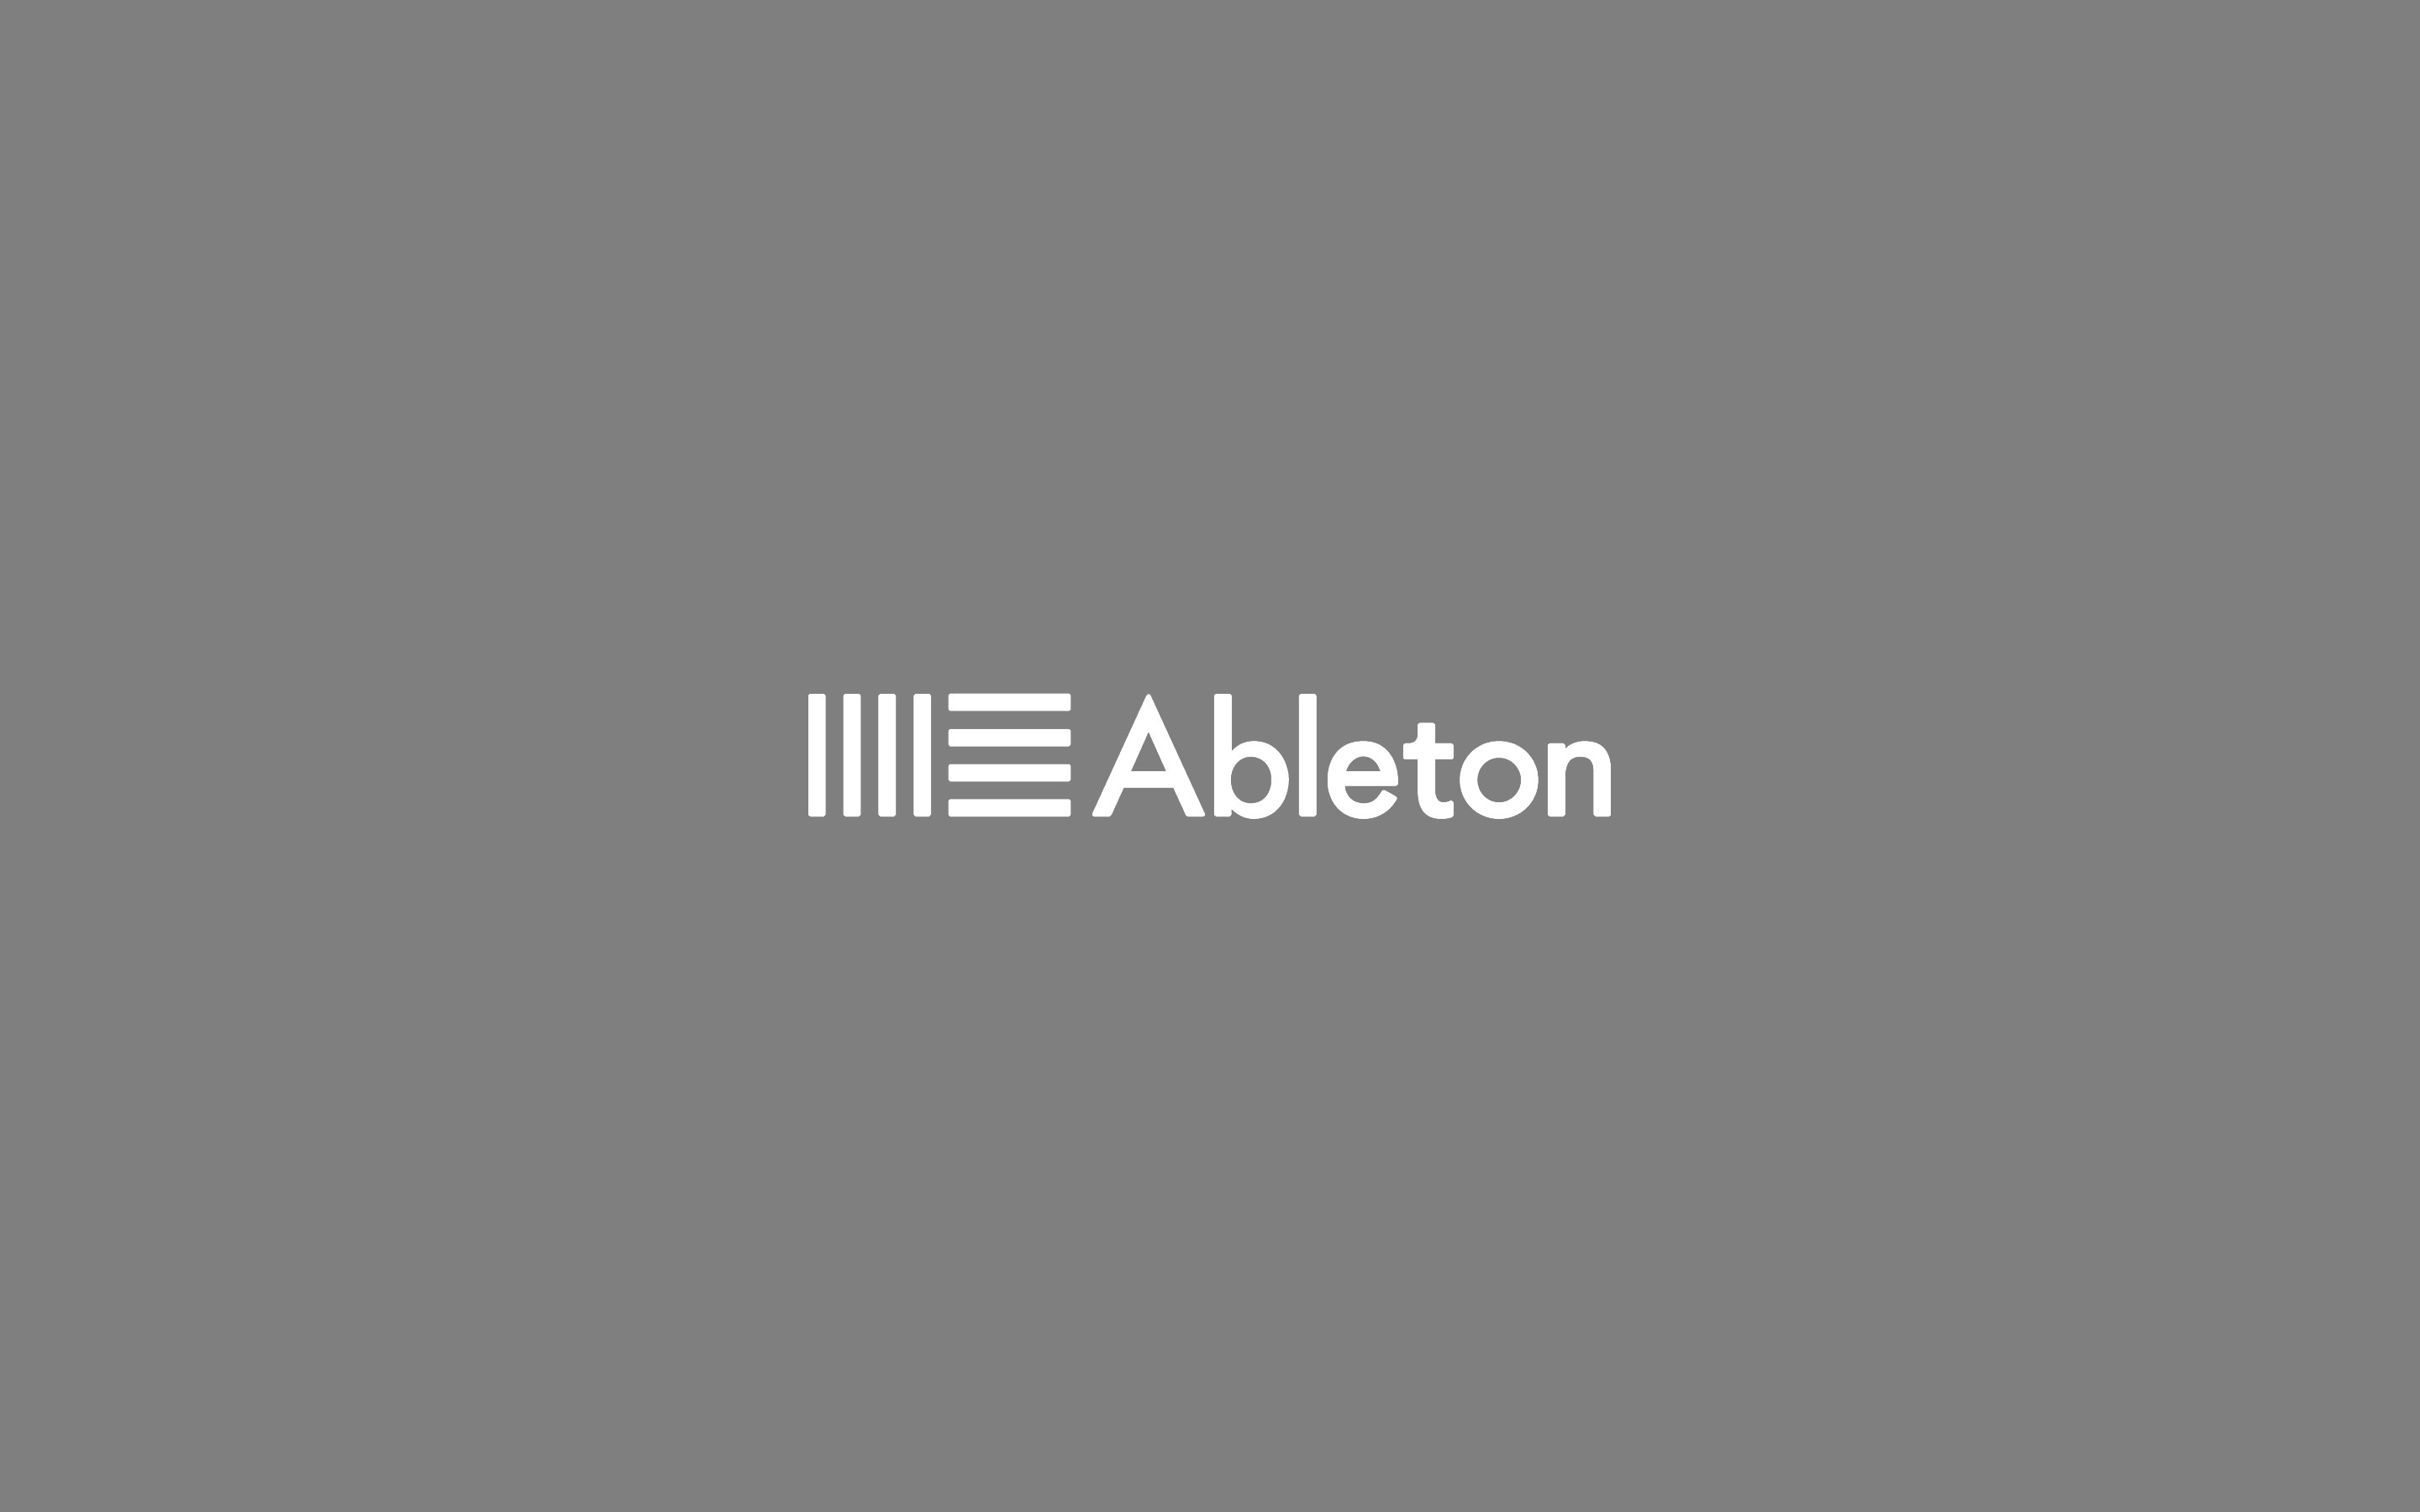 Ableton Wallpaper, Ableton Backgrounds for PC – High .